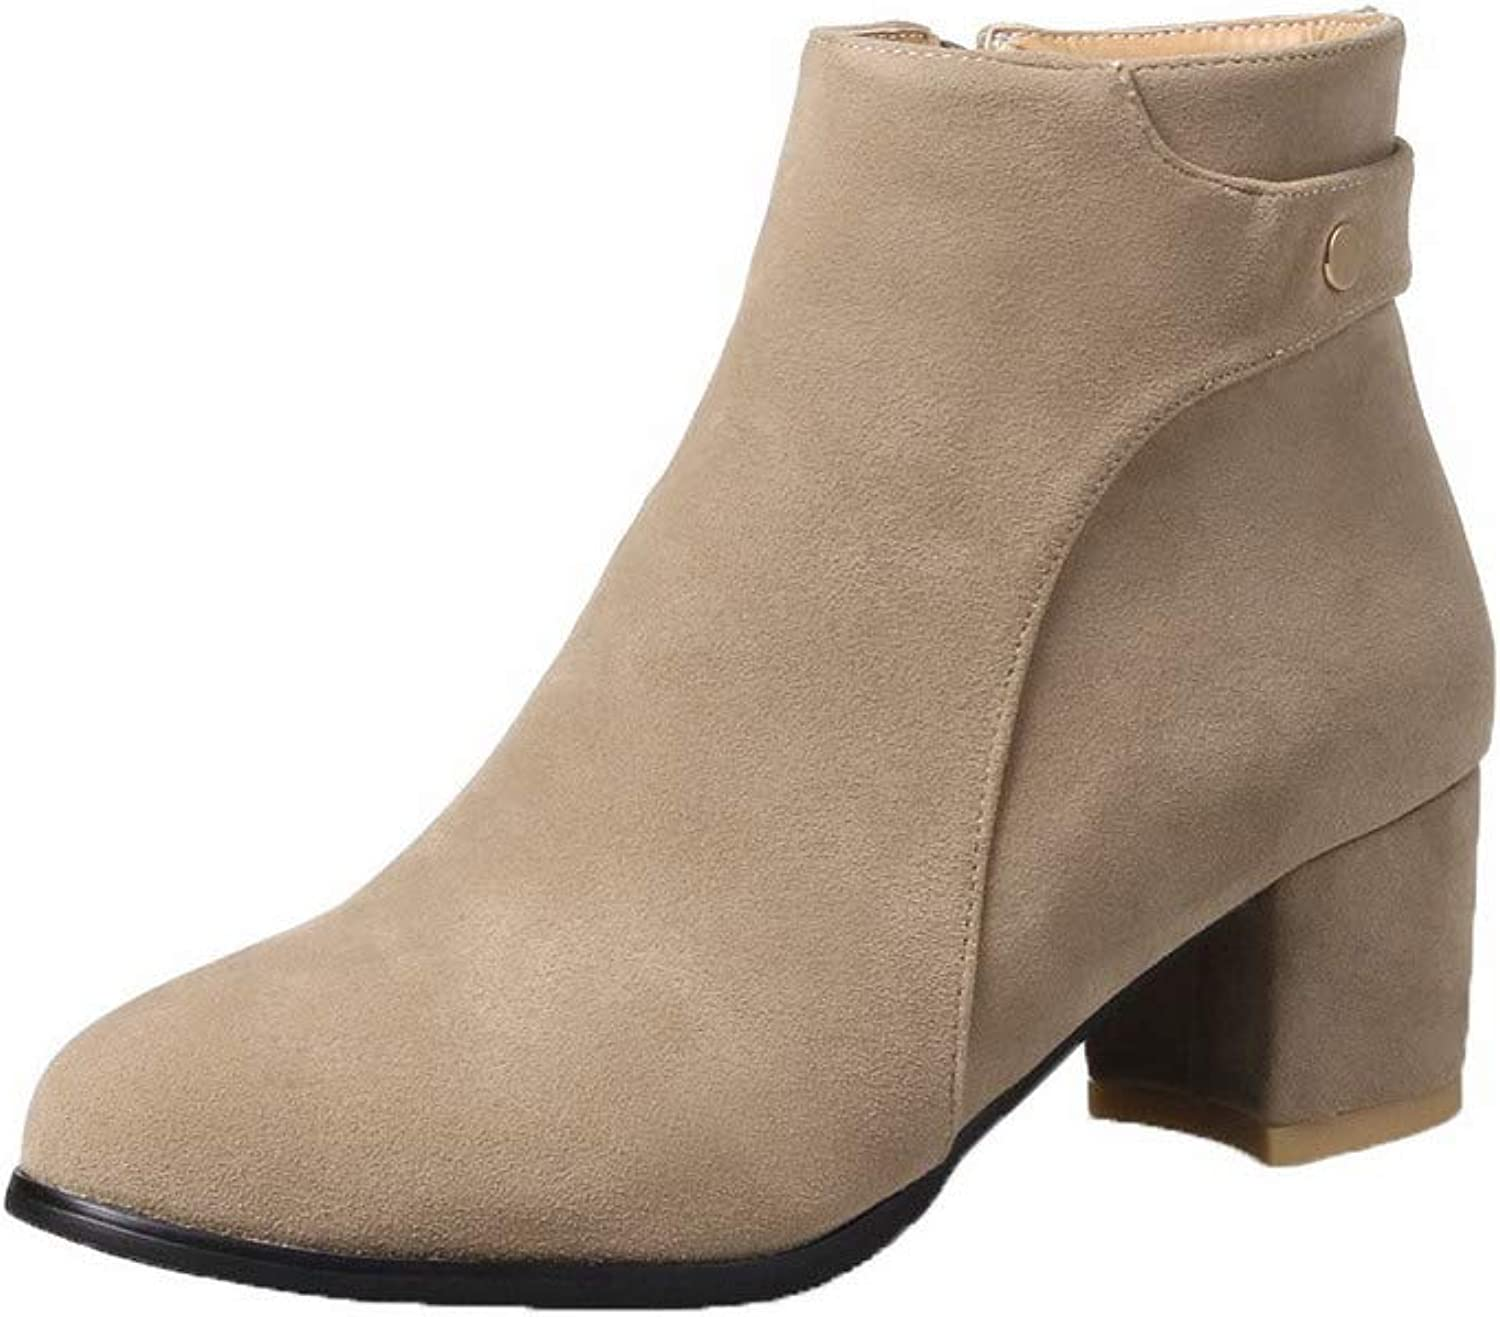 WeiPoot Women's Round-Toe Low-Top Kitten-Heels Solid Imitated Suede Boots, EGHXH116870